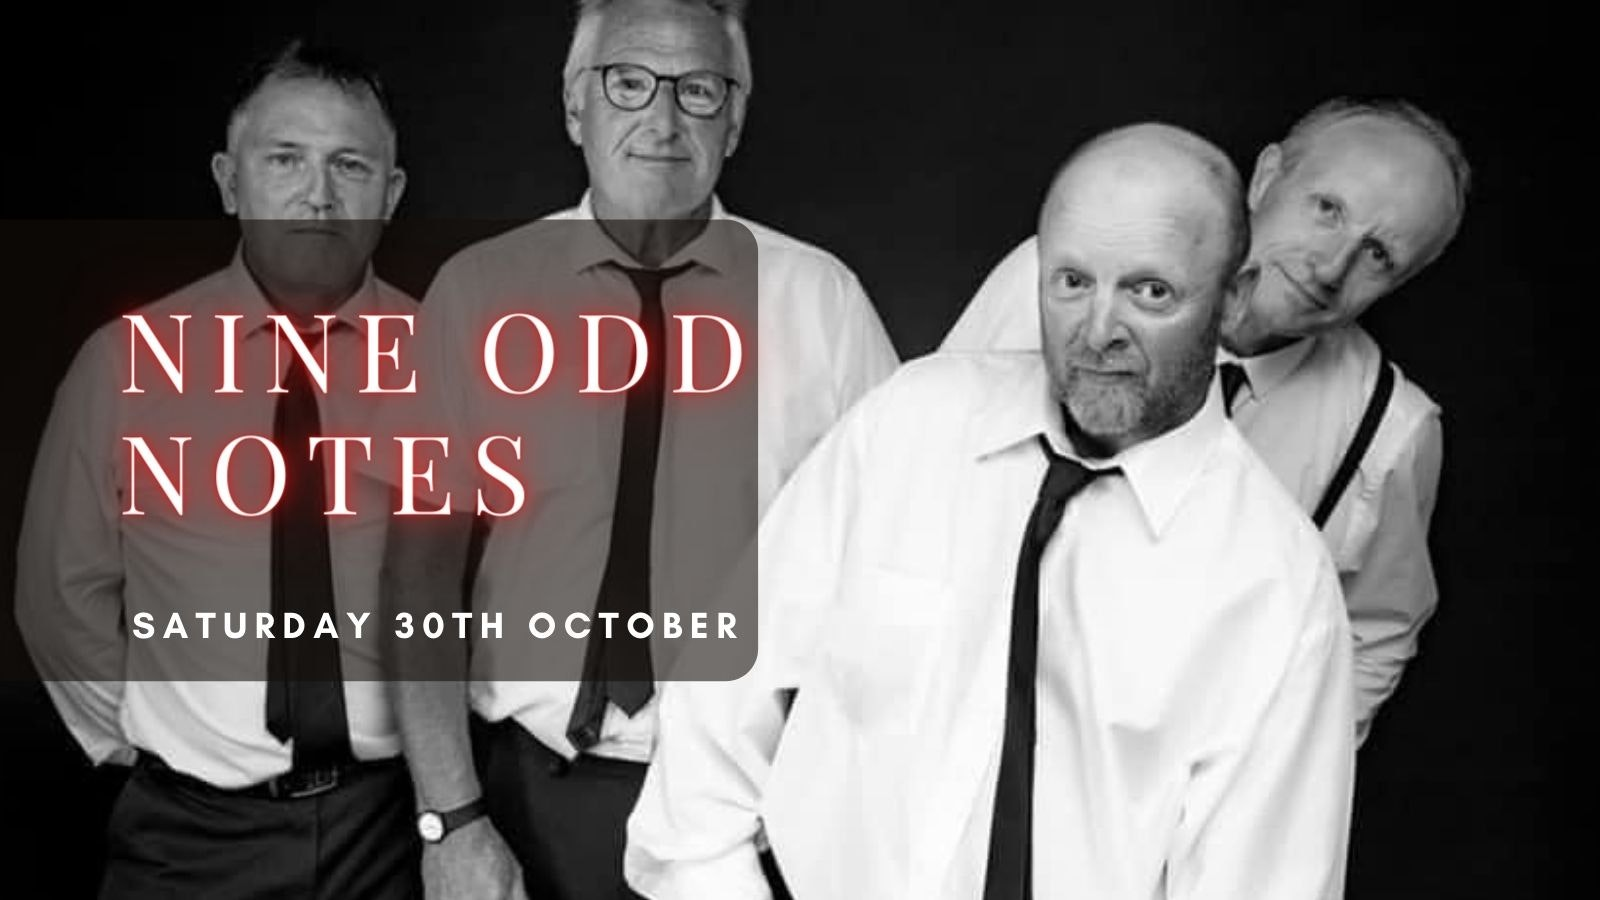 NINE ODD NOTES | Plymouth, Annabel's Cabaret & Discotheque